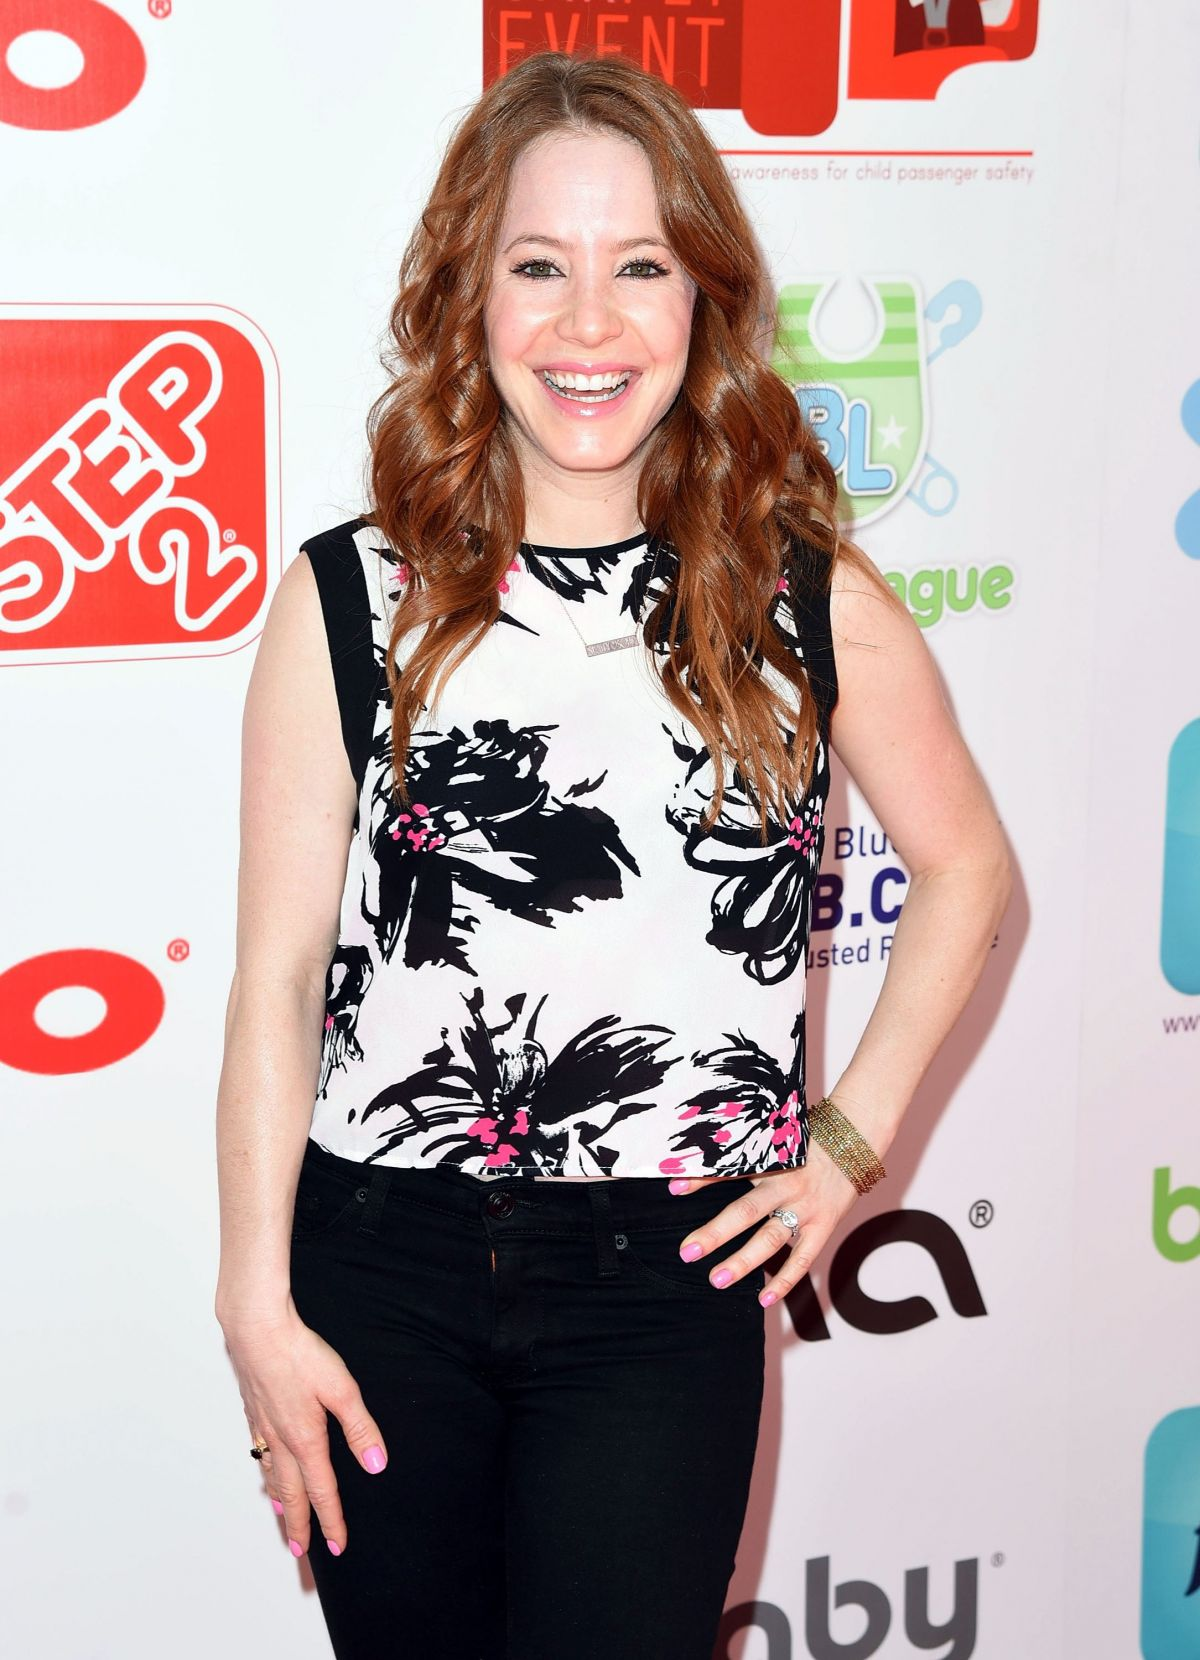 AMY DAVIDSON at 4th Annual Red Carpet Safety Awareness Event in Los Angeles 09/19/2015